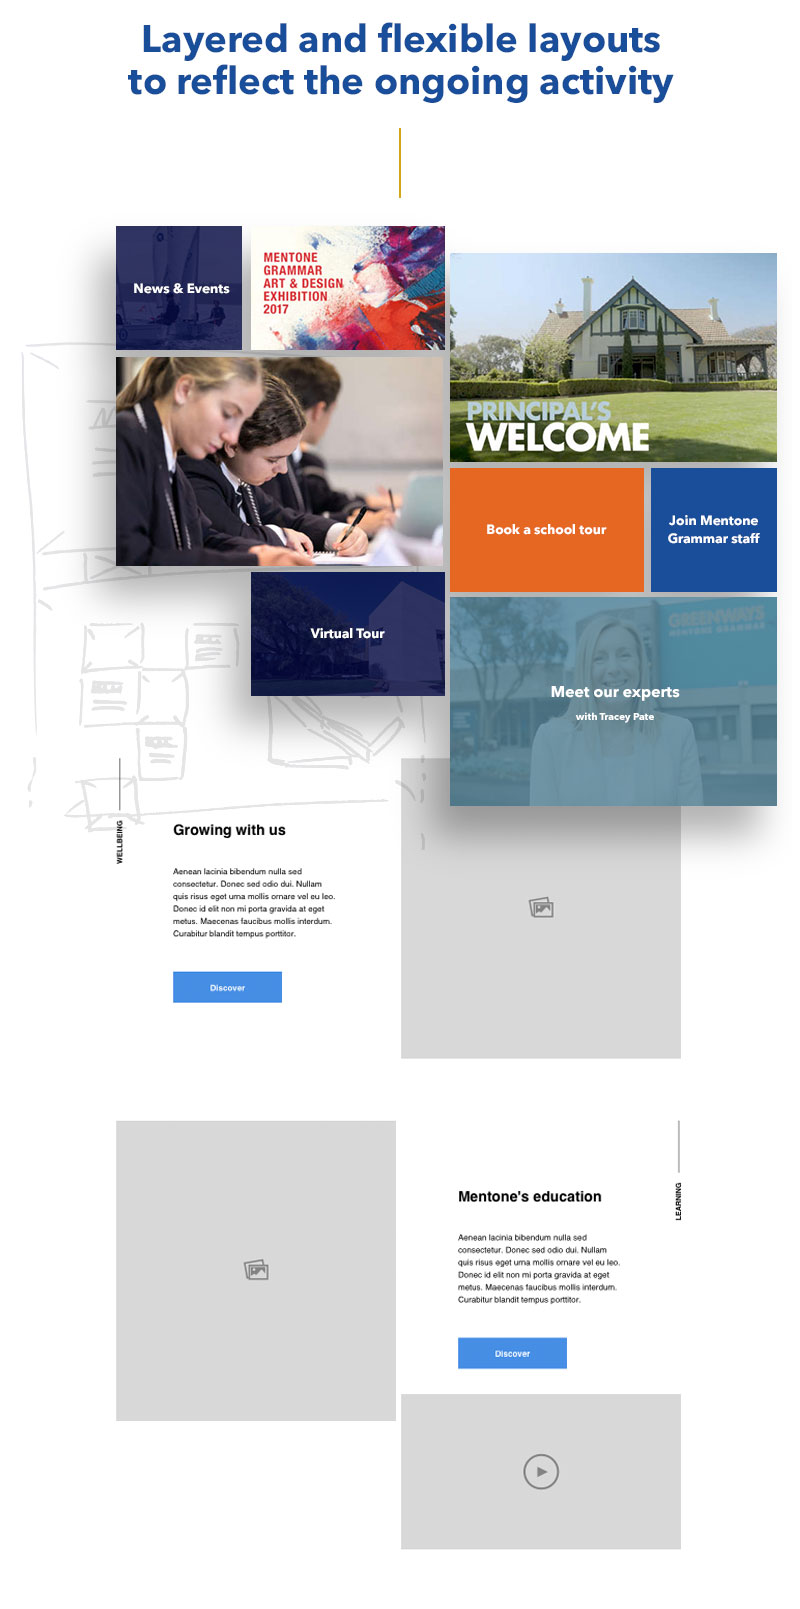 Layered and flexible layouts to reflect the ongoing activity